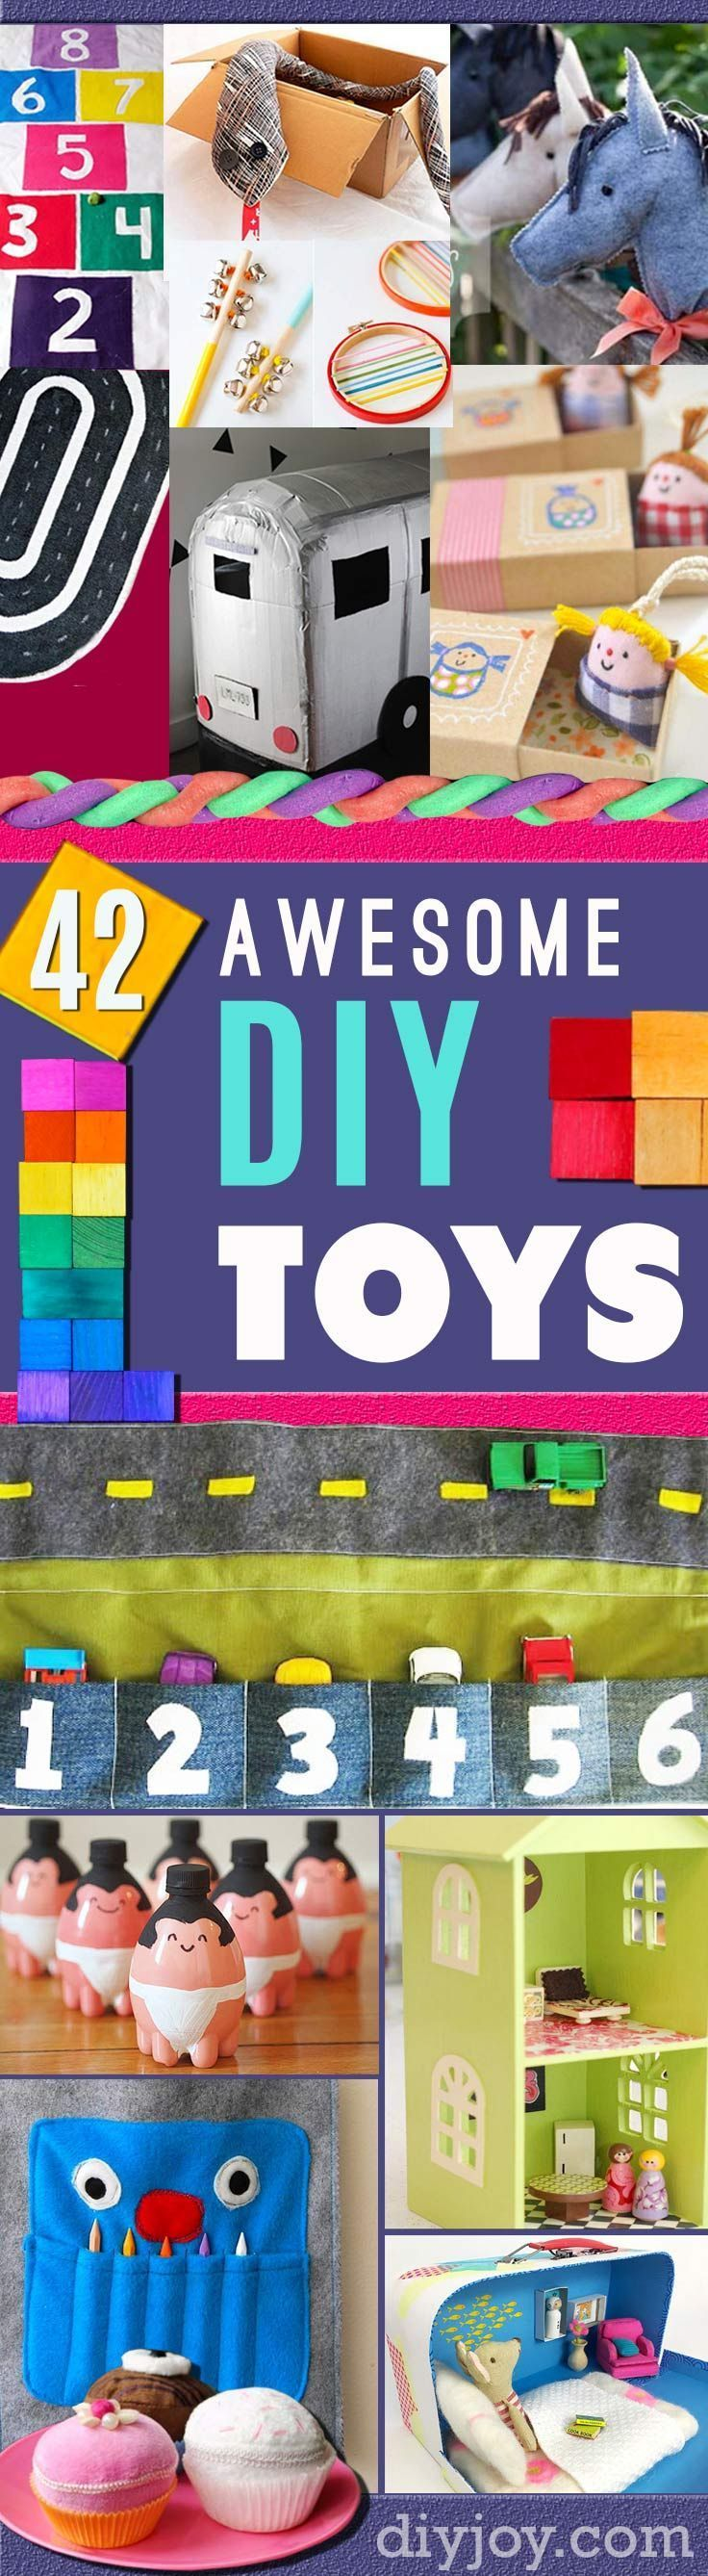 Do It Yourself Christmas Gifts for Kids - Homemade Christmas Presents for Children and DYI Christmas Crafts for Kids | Toys, Dress Up Clothes, Dolls and Fun Games | Cool gifts to make for boys and girls | http://diyjoy.com/diy-christmas-gifts-for-kids